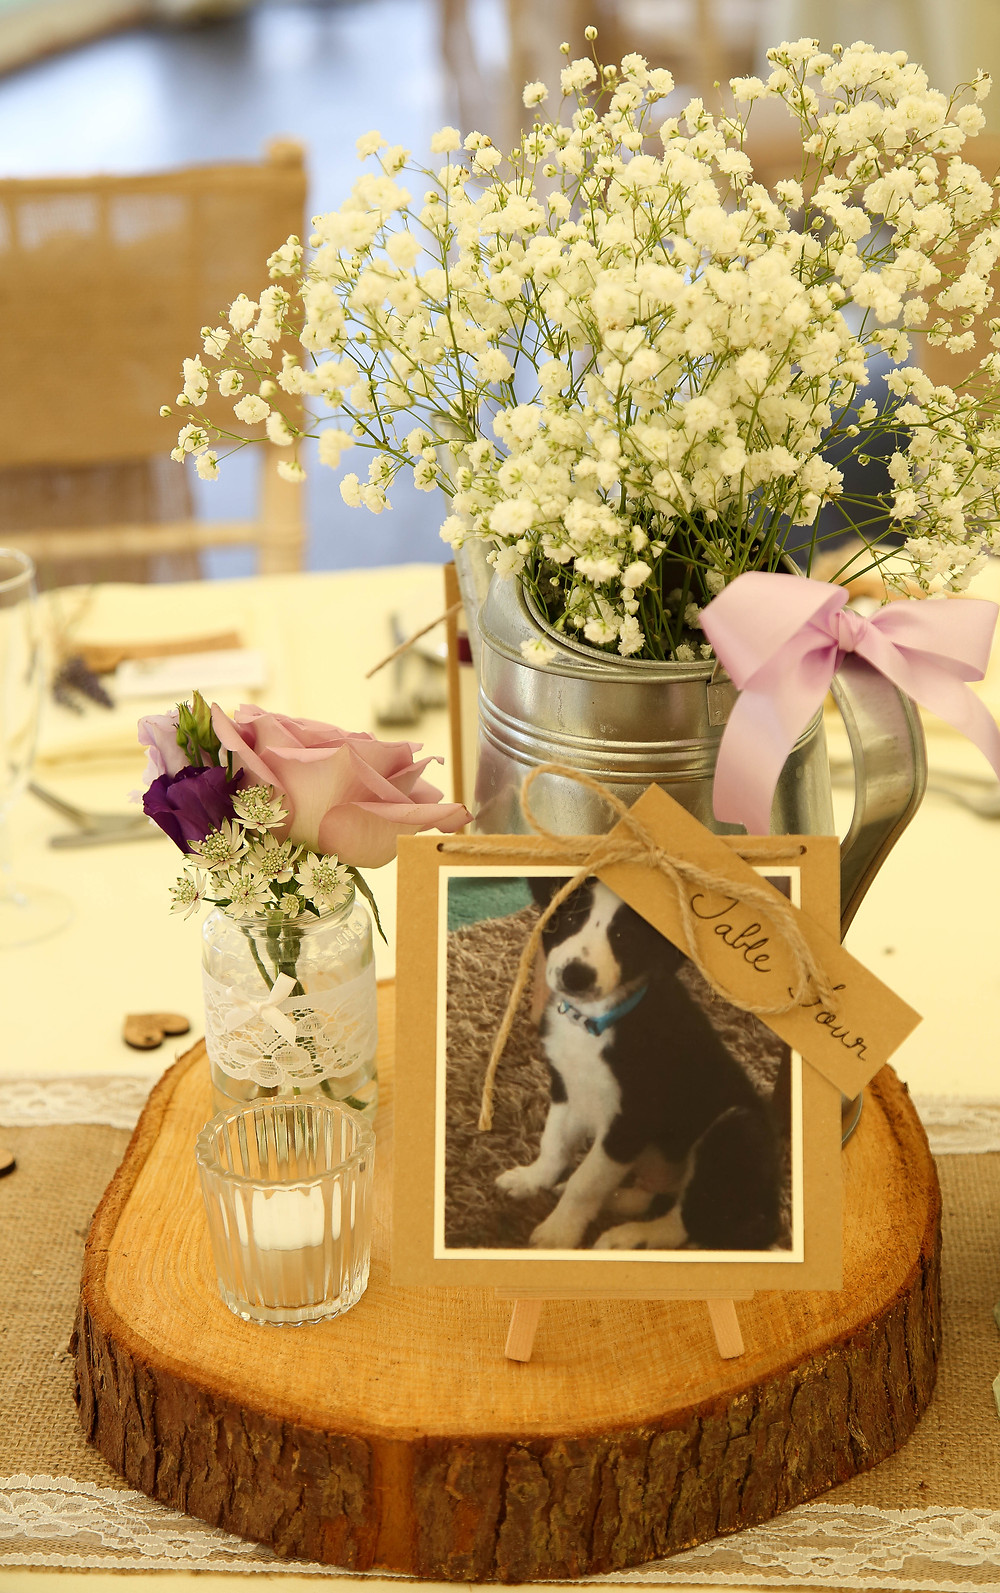 Rustic Log Slice Centre piece with Pets